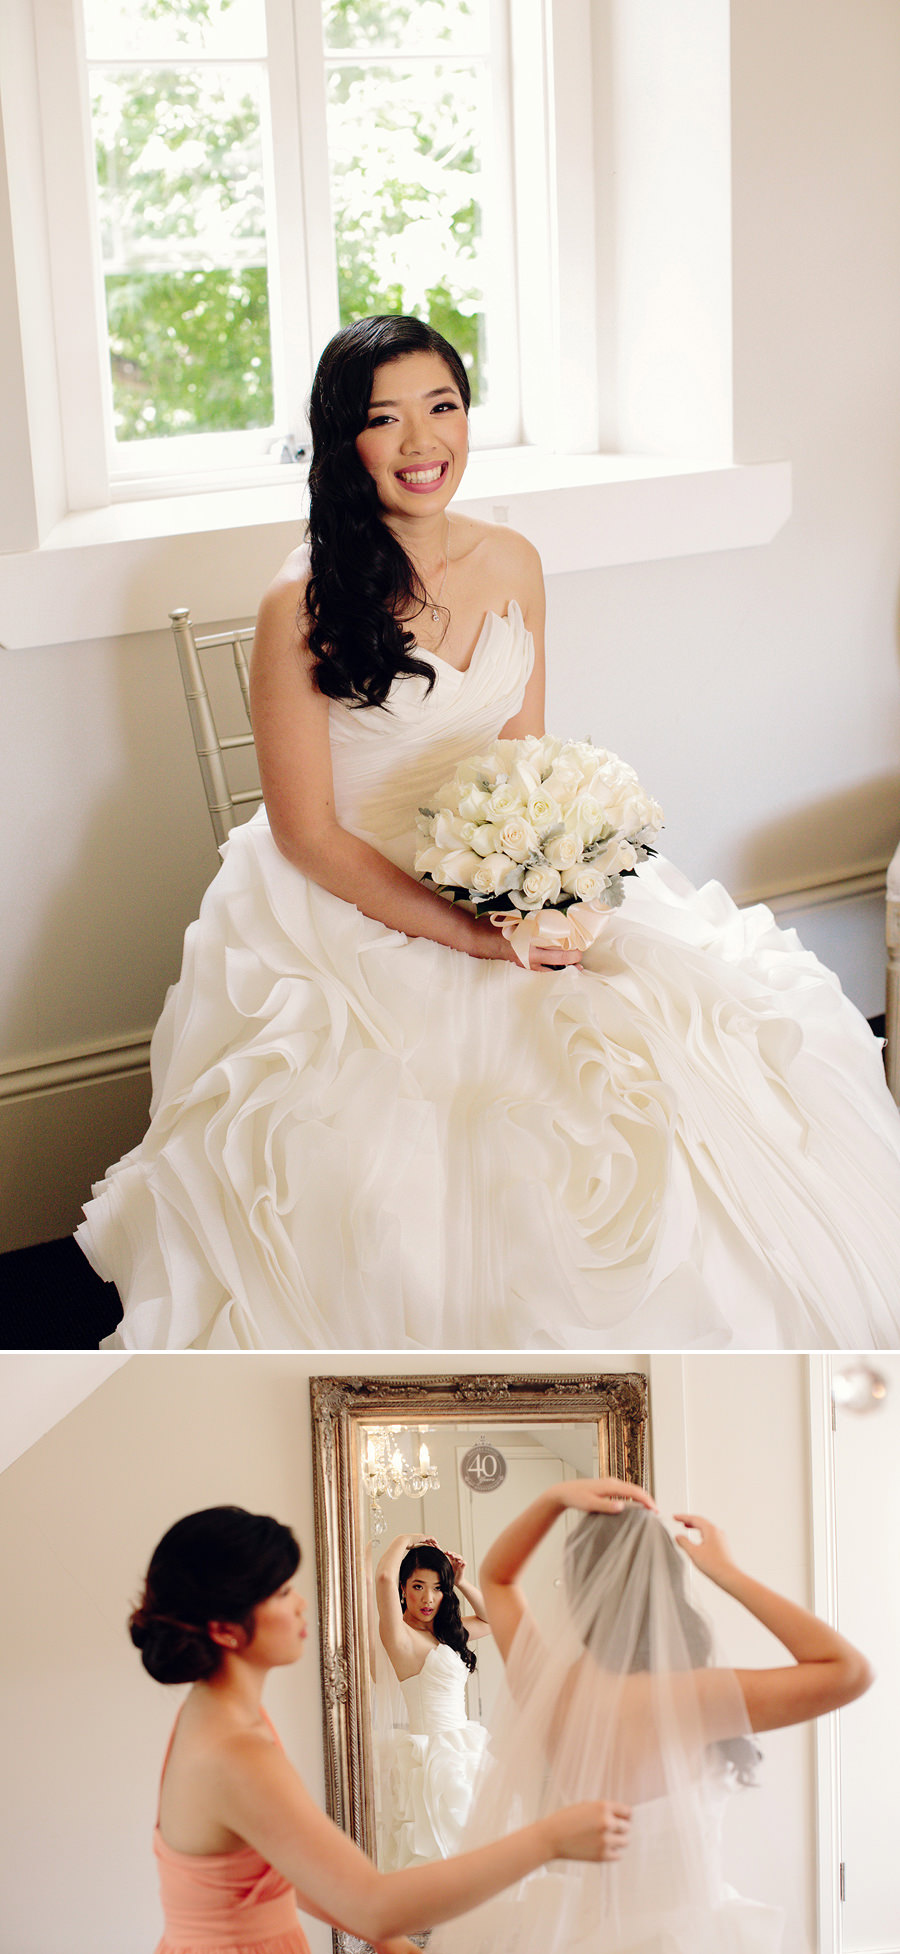 Navarra Venues Wedding Photographer: Bridal suite